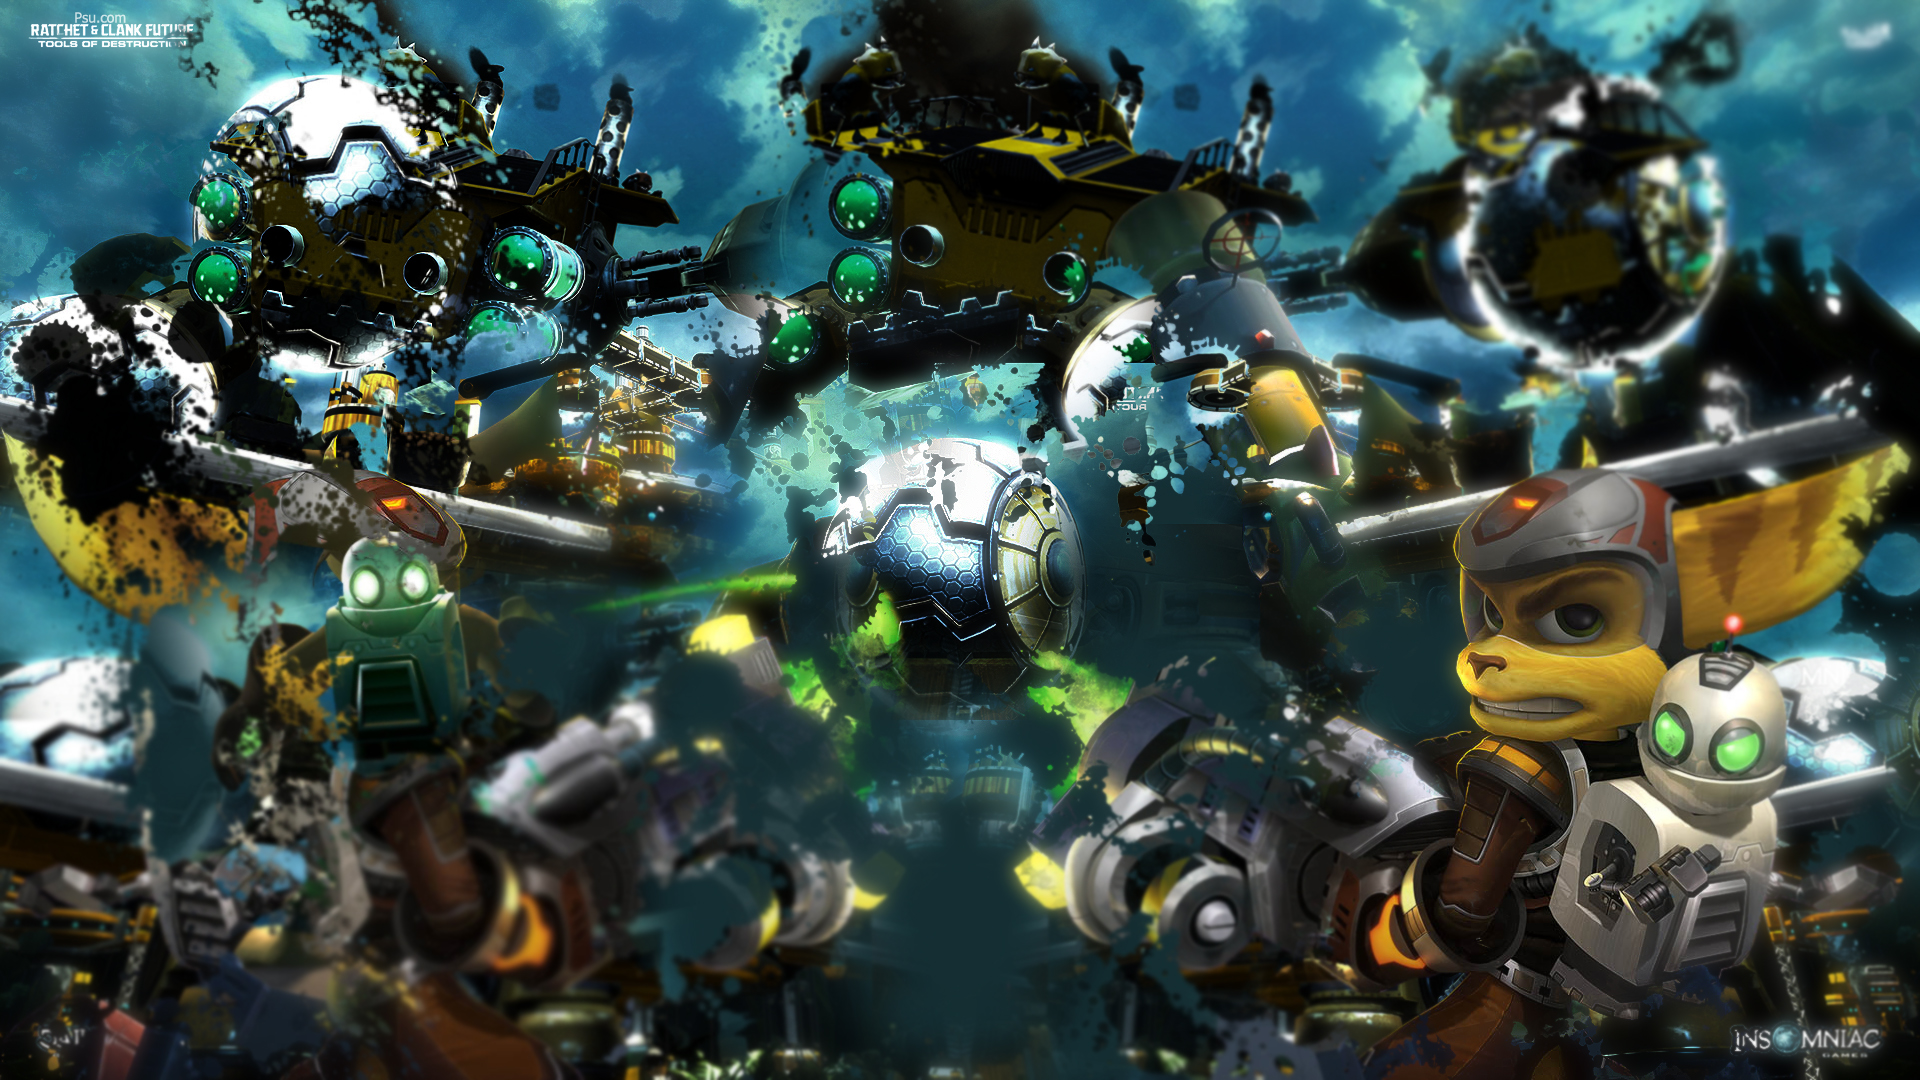 Widescreen Wallpapers Of Ratchet And Clank Adorable Picture